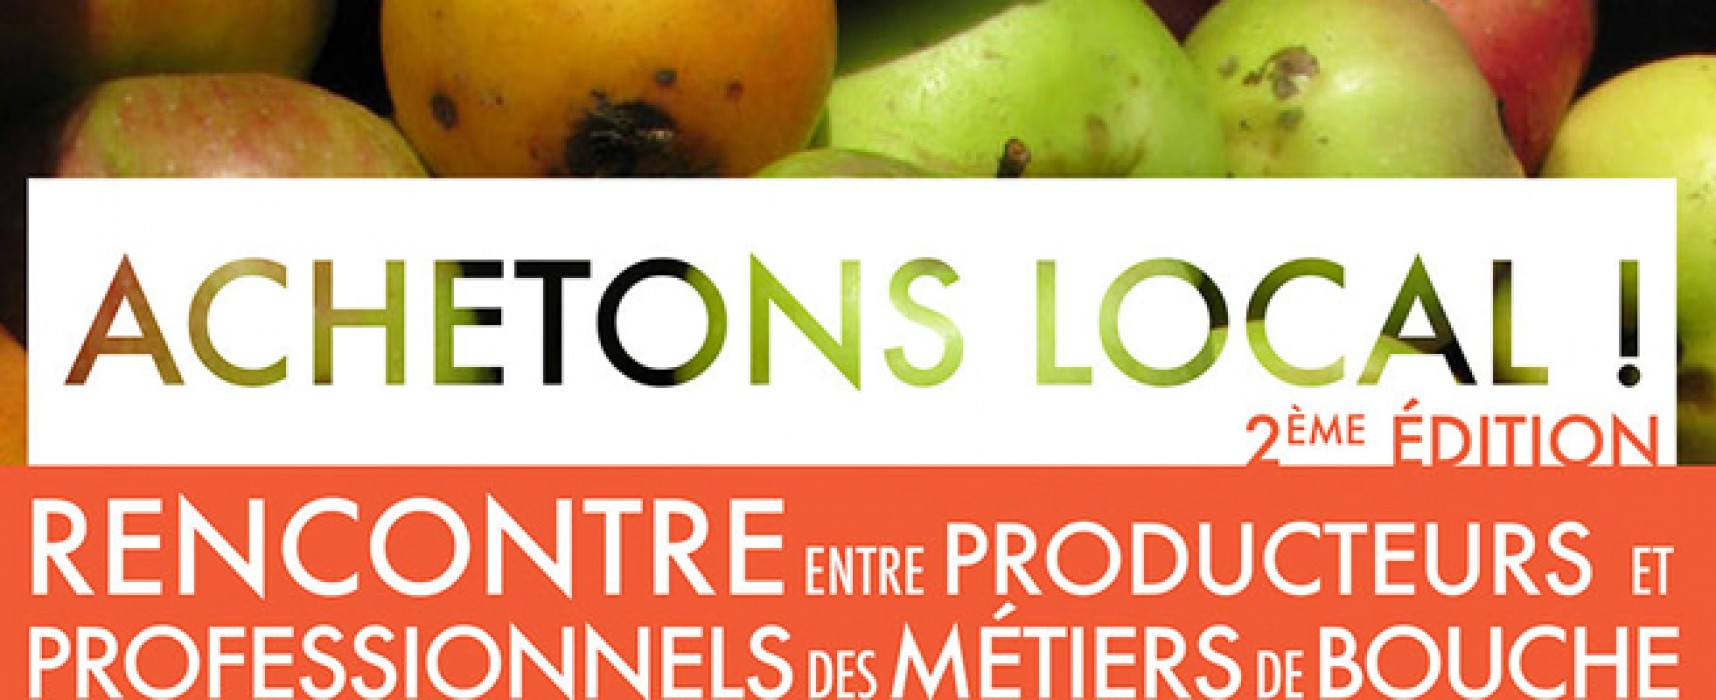 Achetons local #2